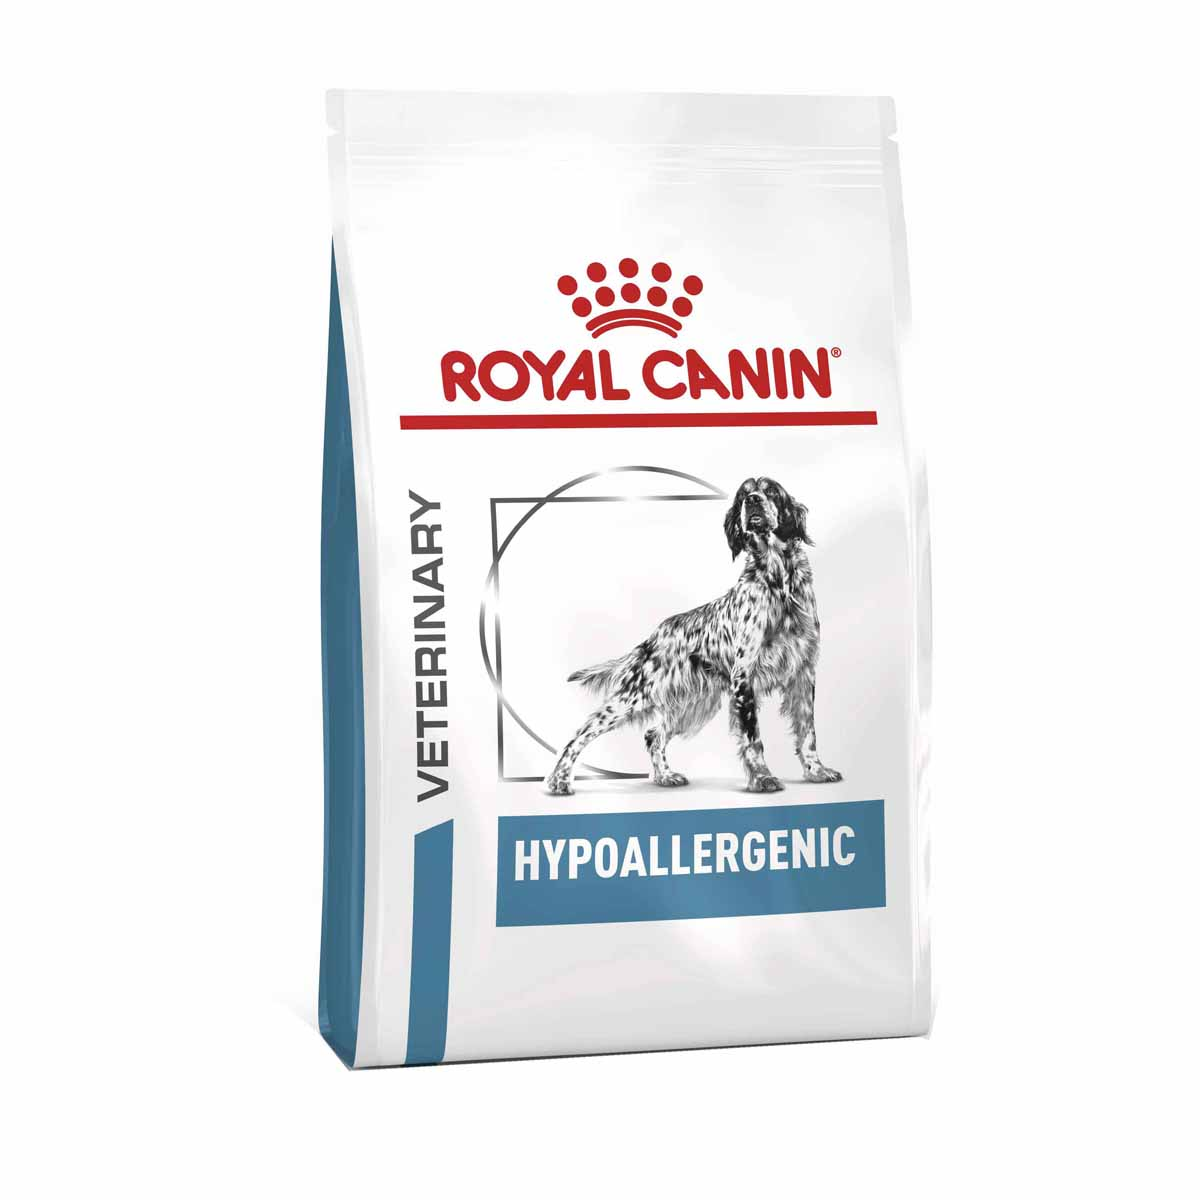 Royal Canin Hypoallergenic 2kg.